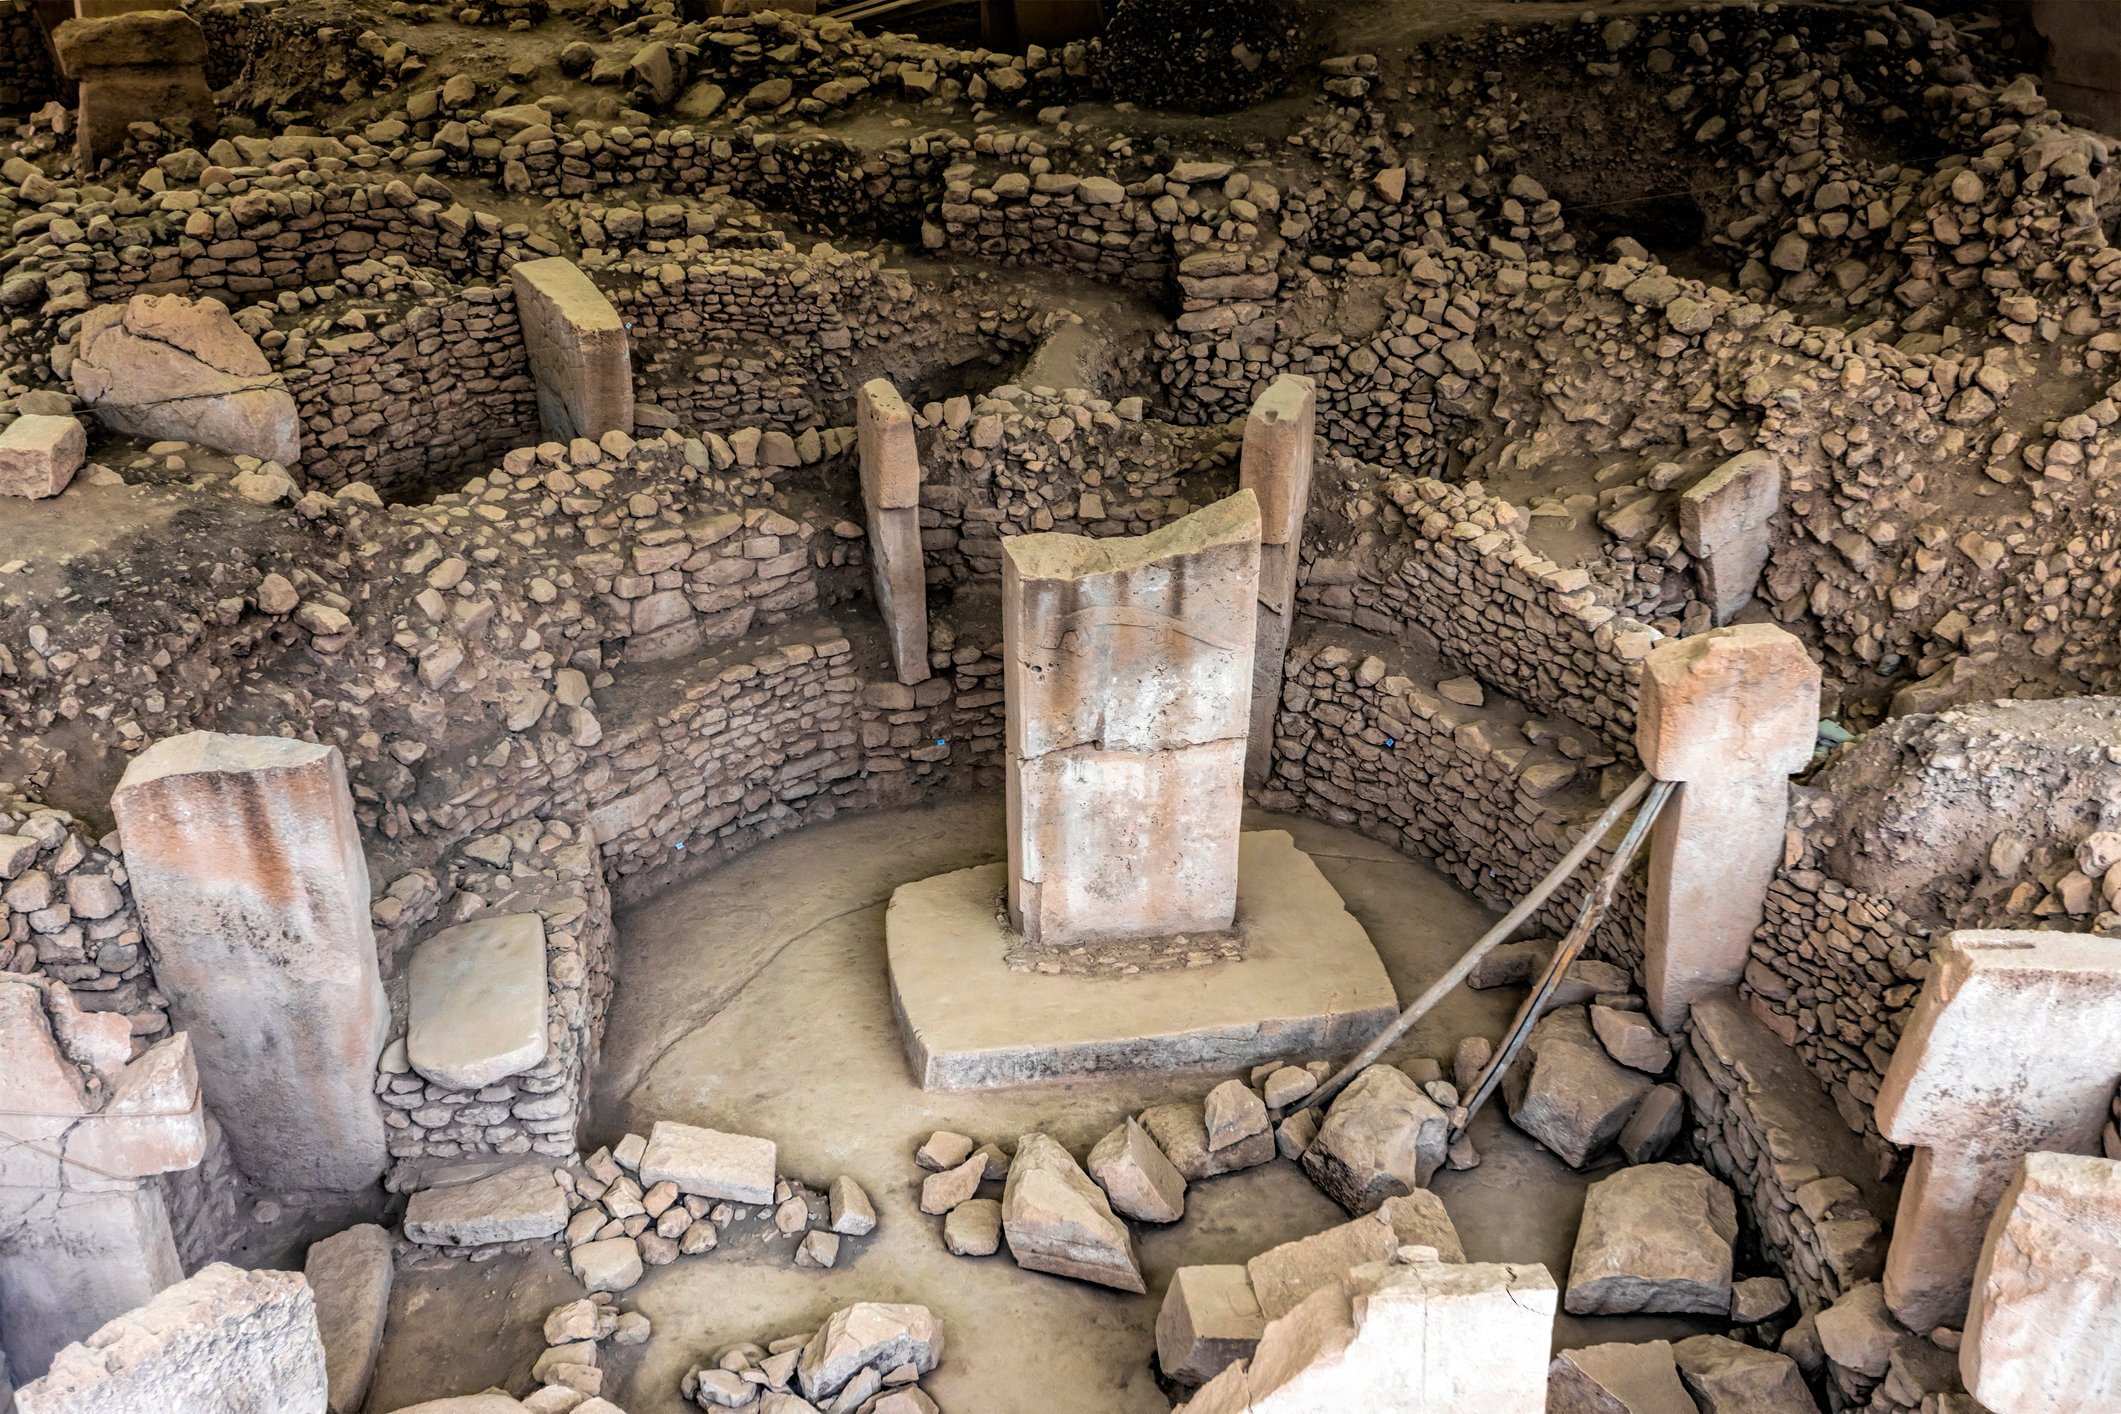 The imposing stratigraphy of Göbeklitepe attests to many centuries of activity, beginning at least as early as the Epipaleolithic period. (iStock Photo)